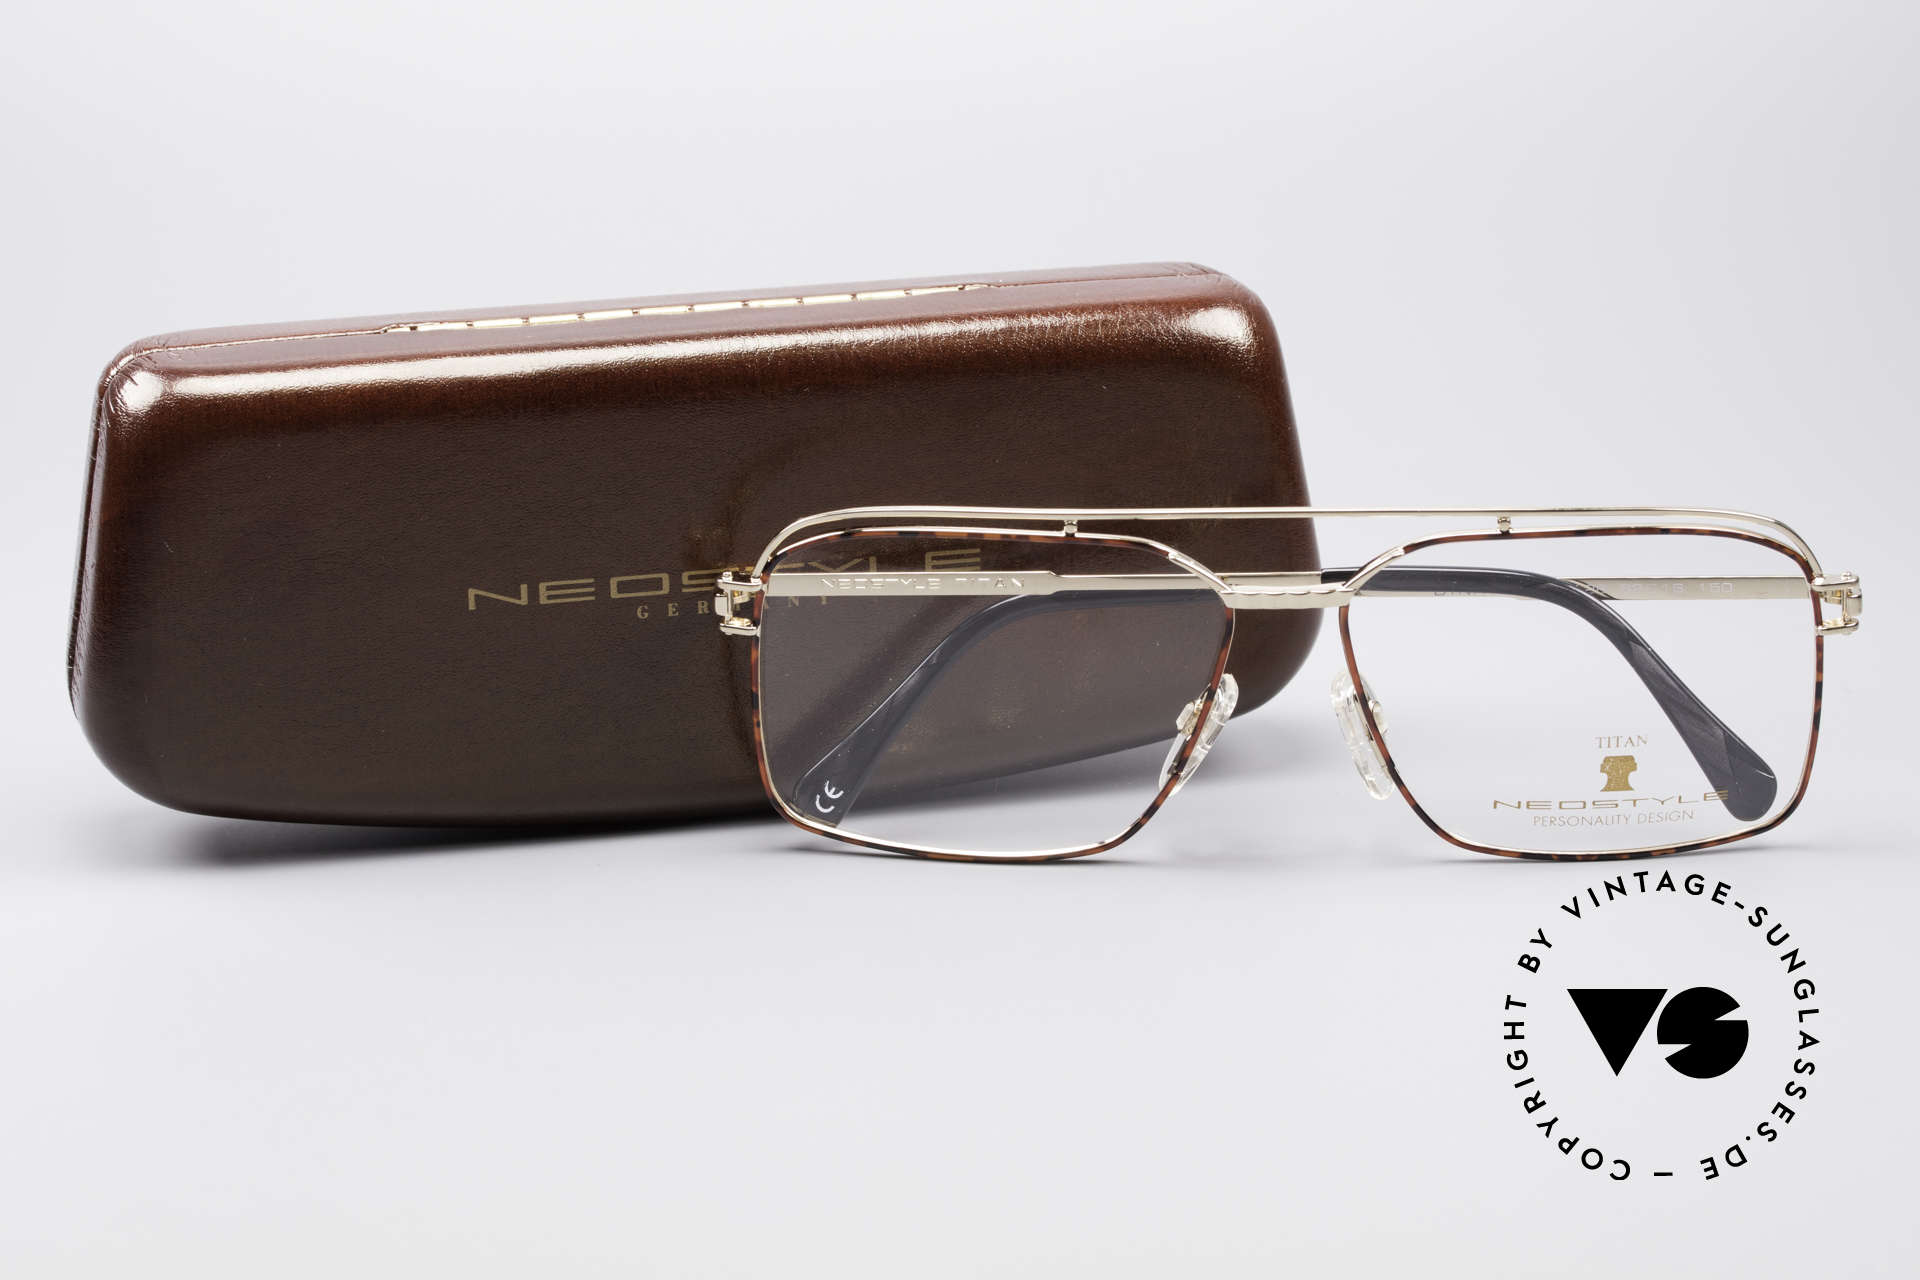 Neostyle Dynasty 424 - XL 80's Titanium Men's Frame, the frame fits lenses of any kind (optical / sun), Made for Men